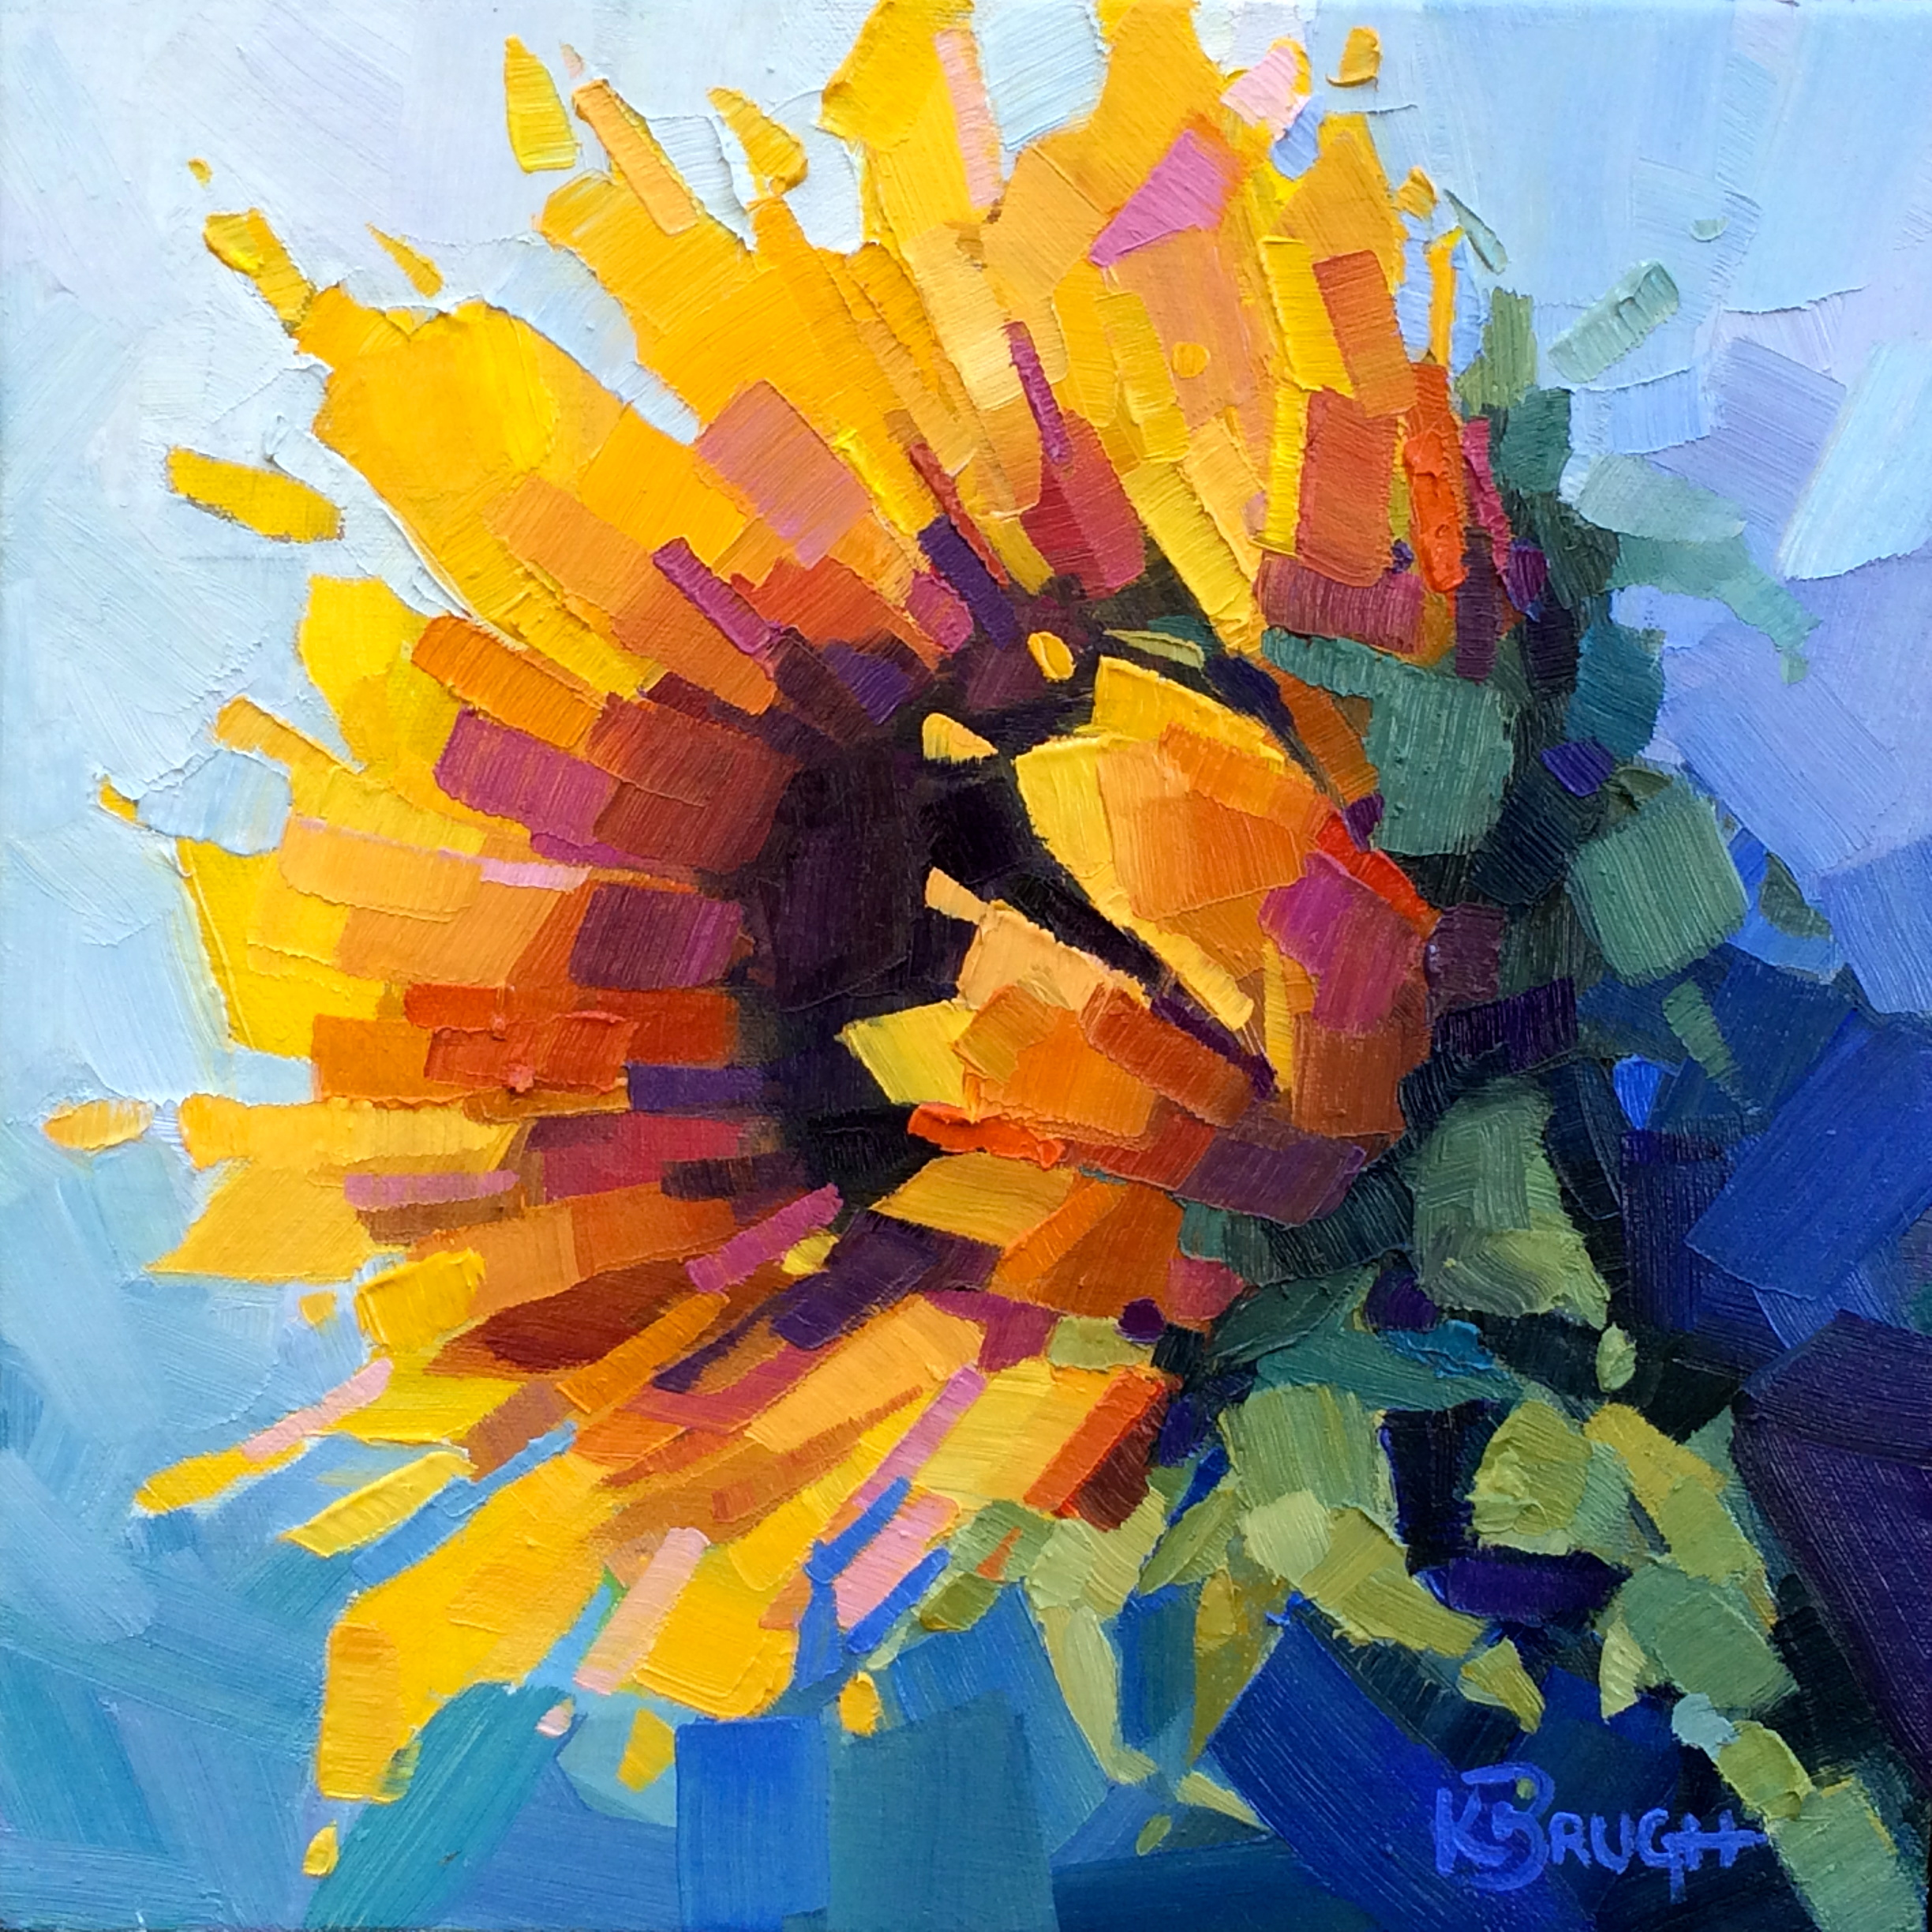 A Sunny Delight by Kelley Brugh 12x12, Oil on canvas